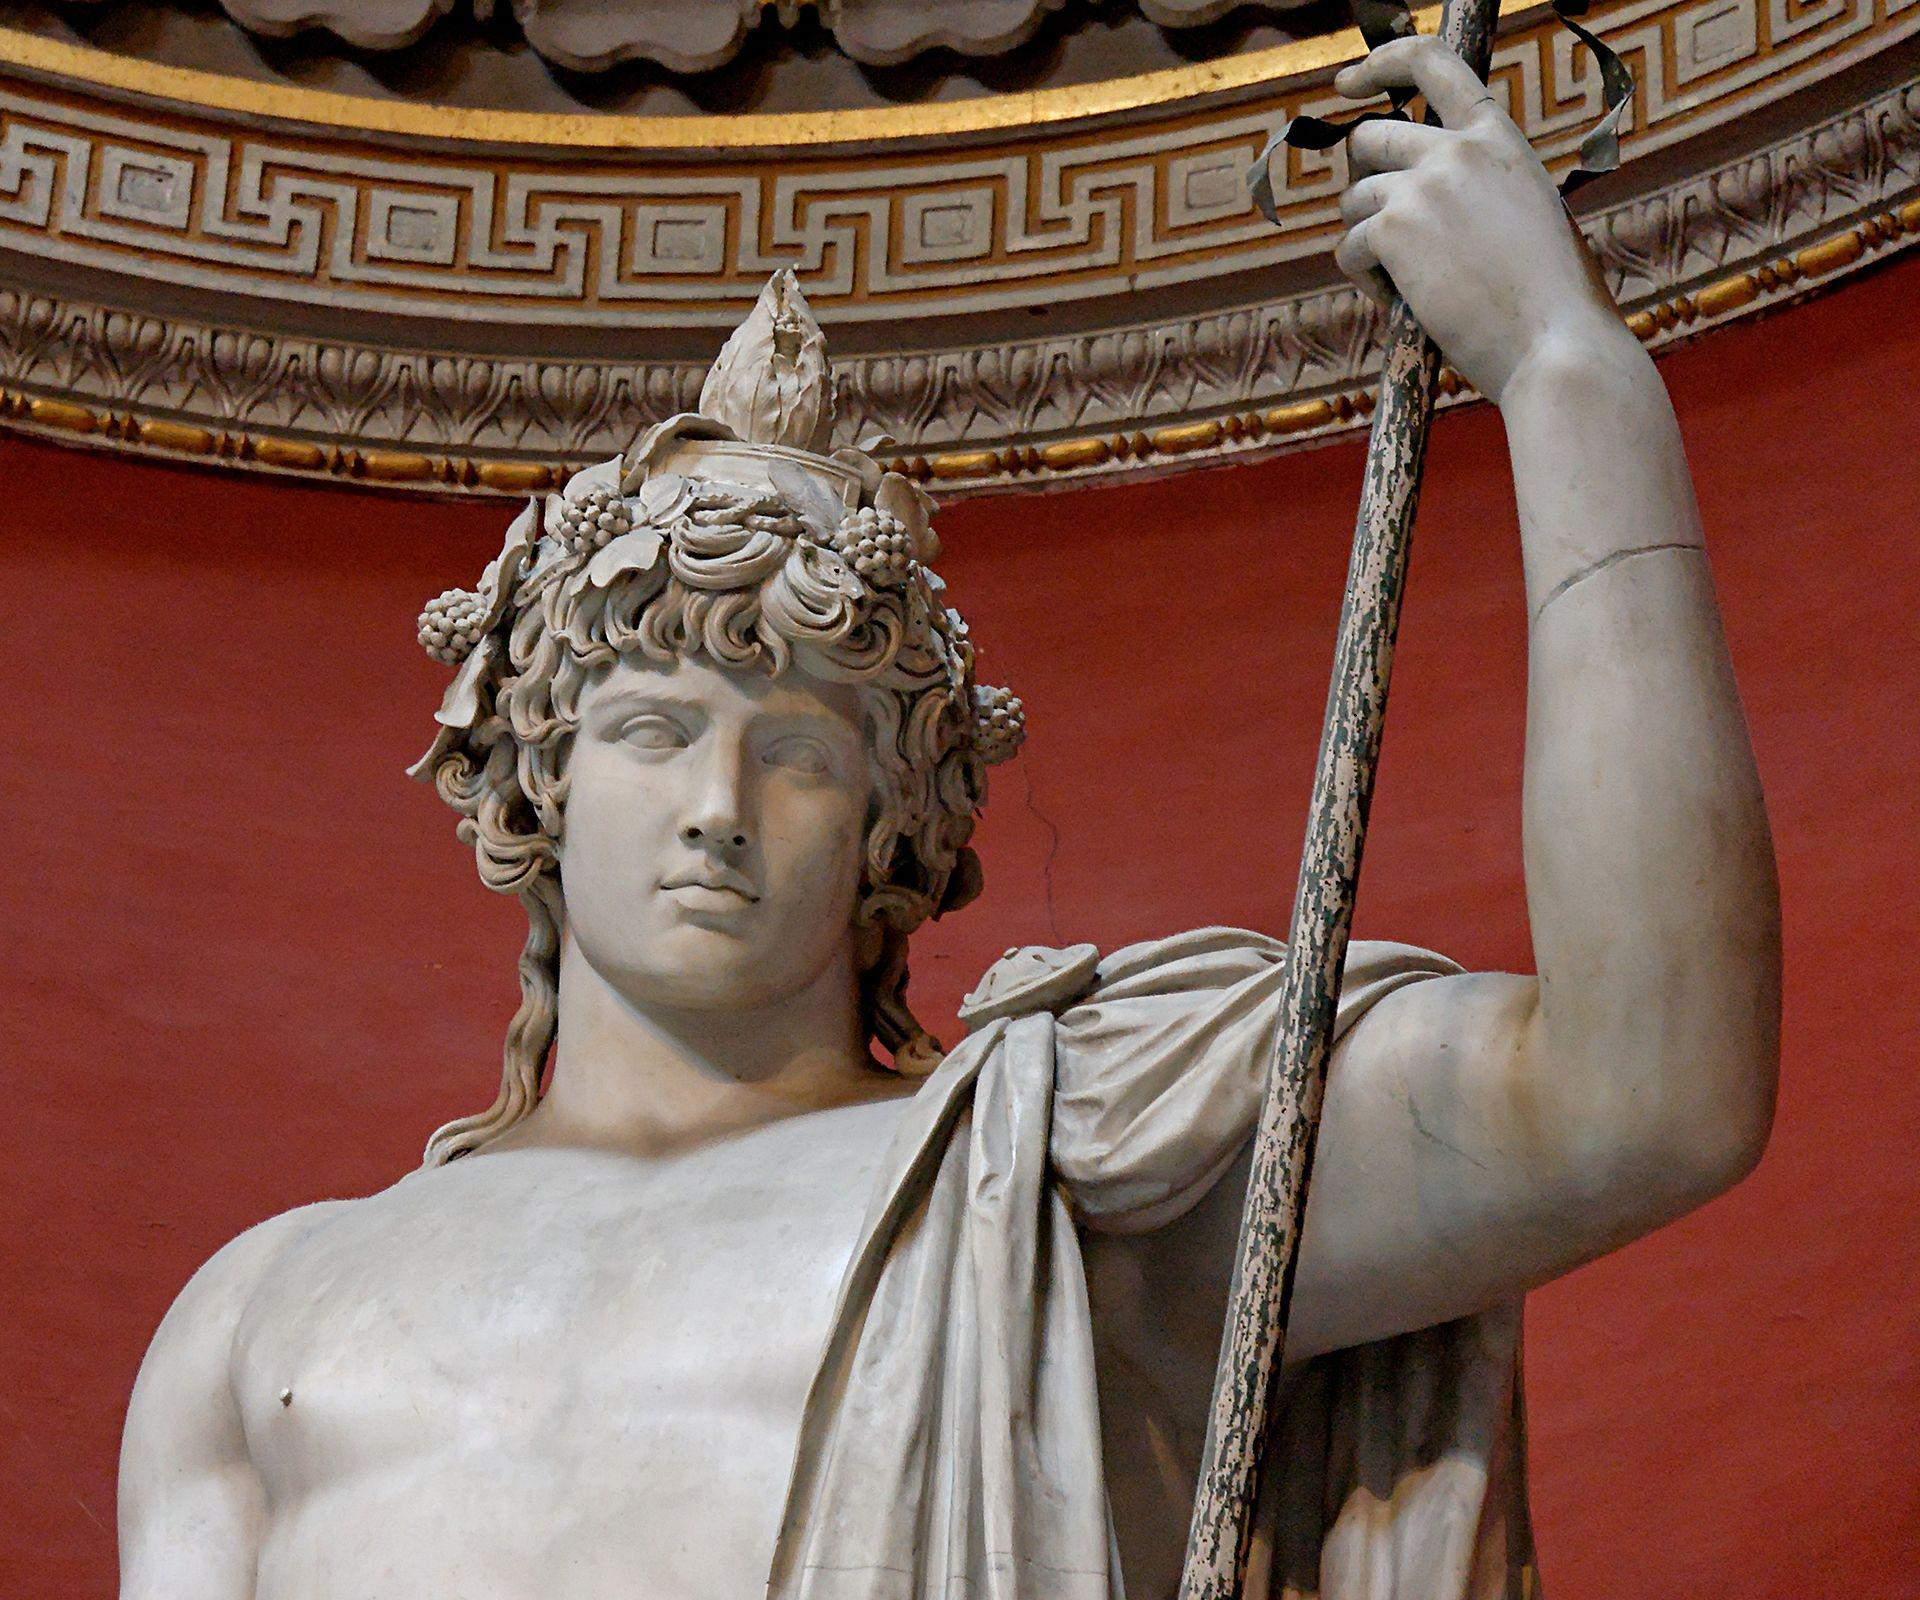 Antinous as Bacchus, colossal sculpture presumed to have been from Hadrian's villa in Palestrina